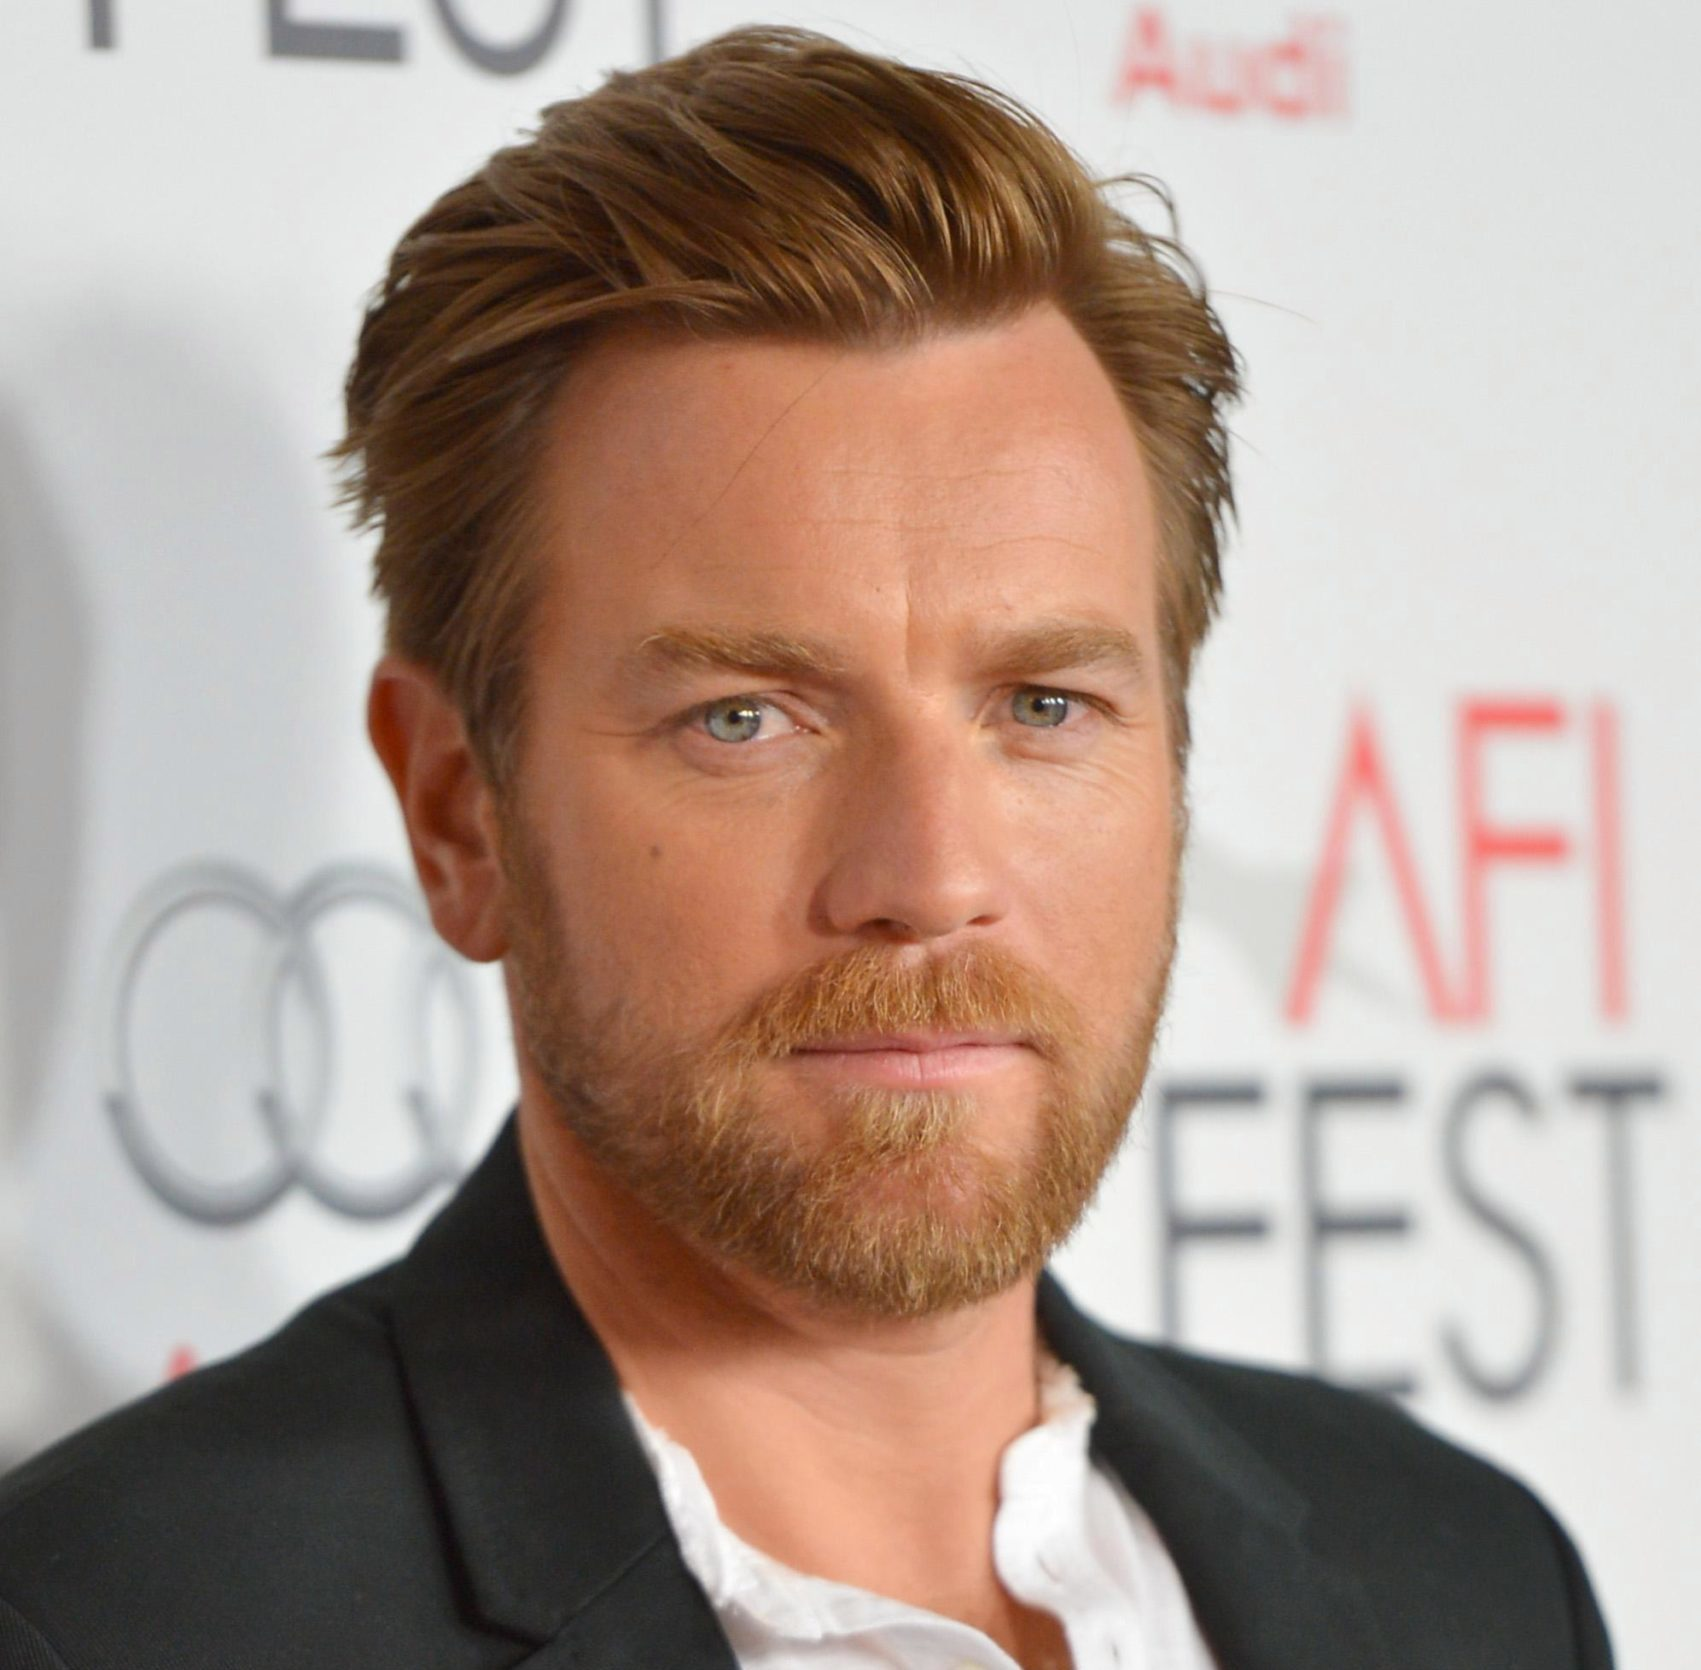 1 94 scaled e1610439372693 20 Things You Probably Didn't Know About Ewan McGregor